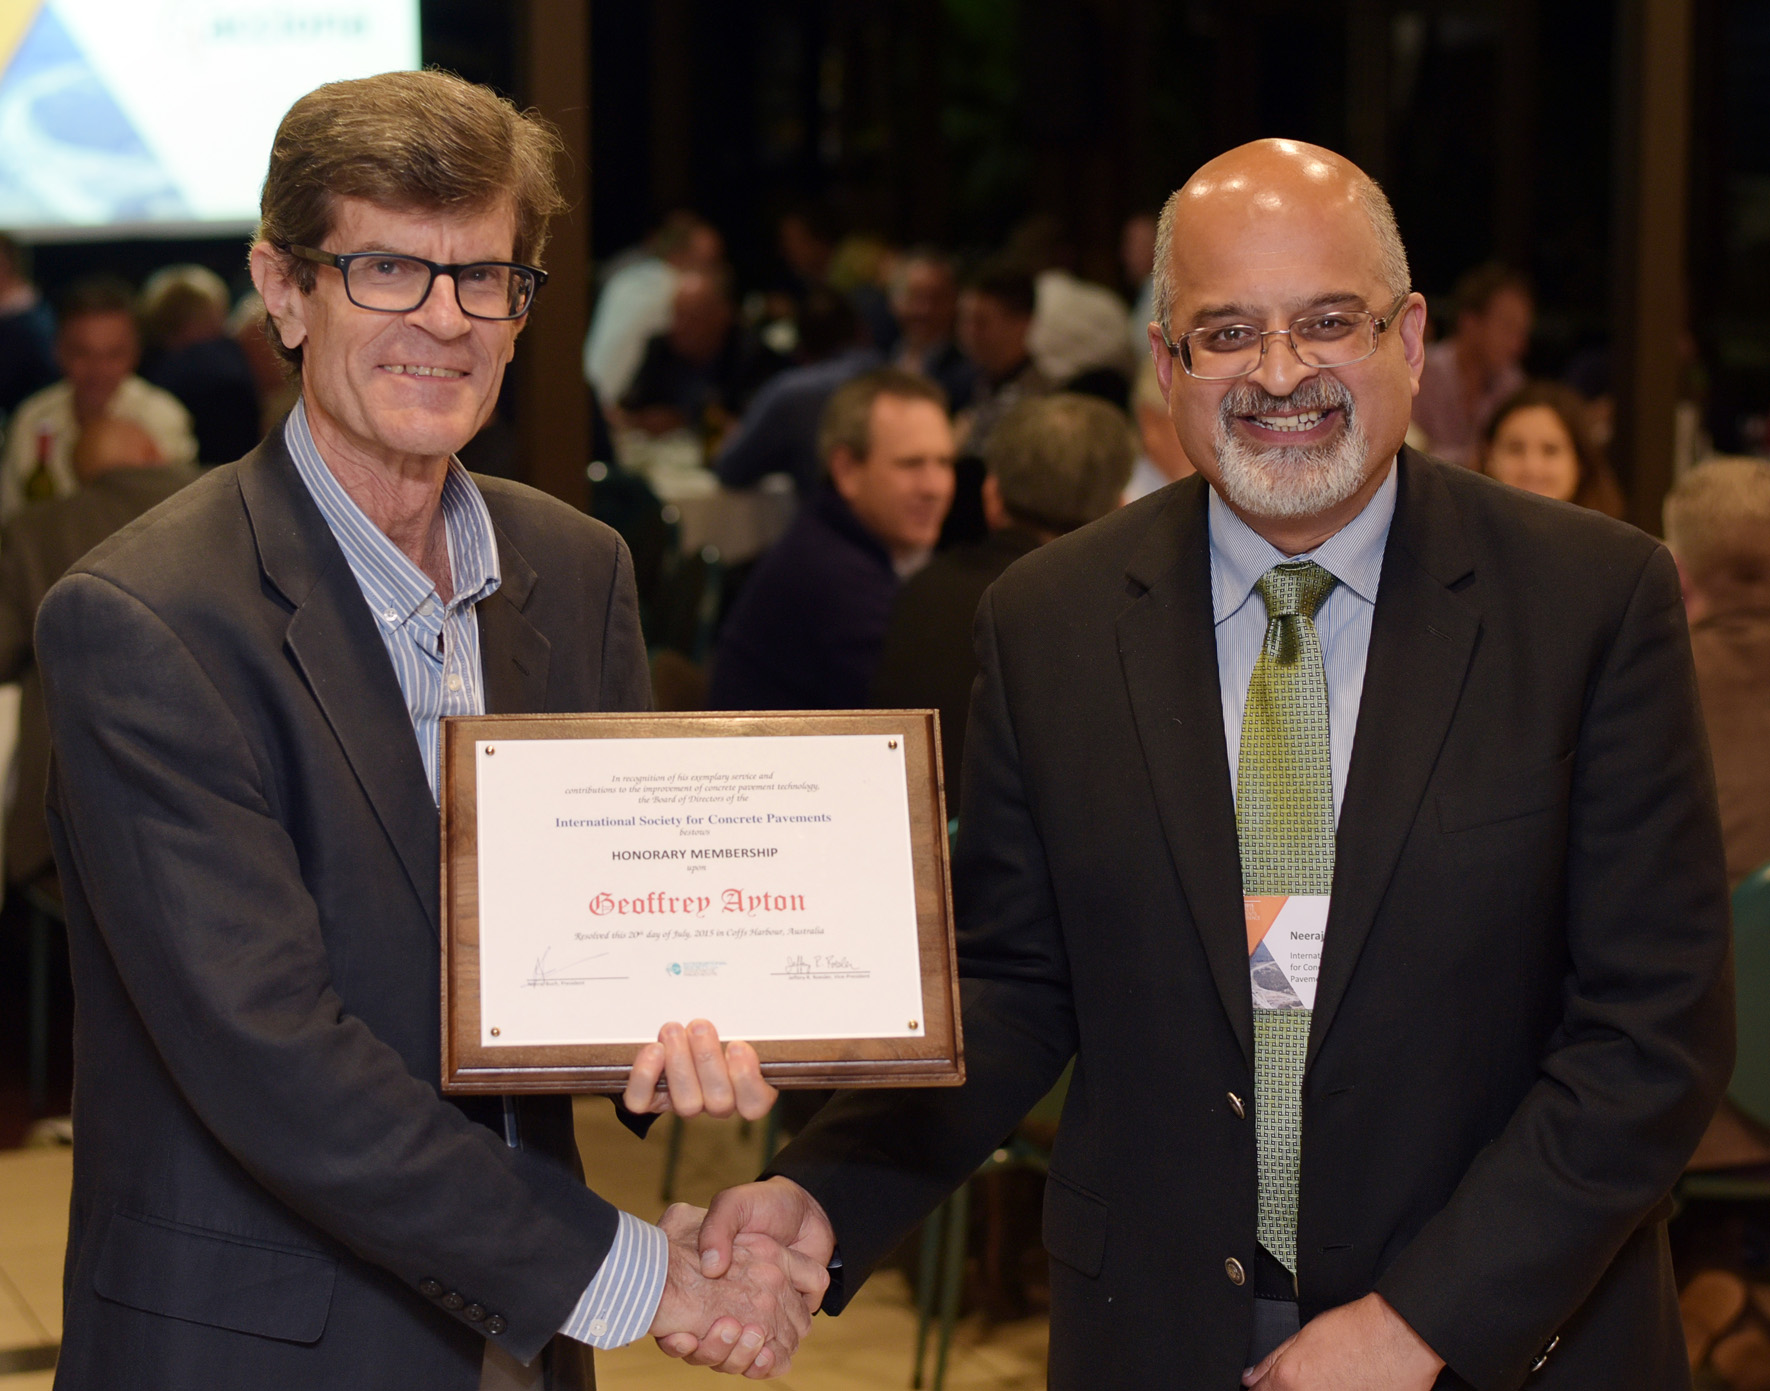 Geoff Ayton awarded by ISCP